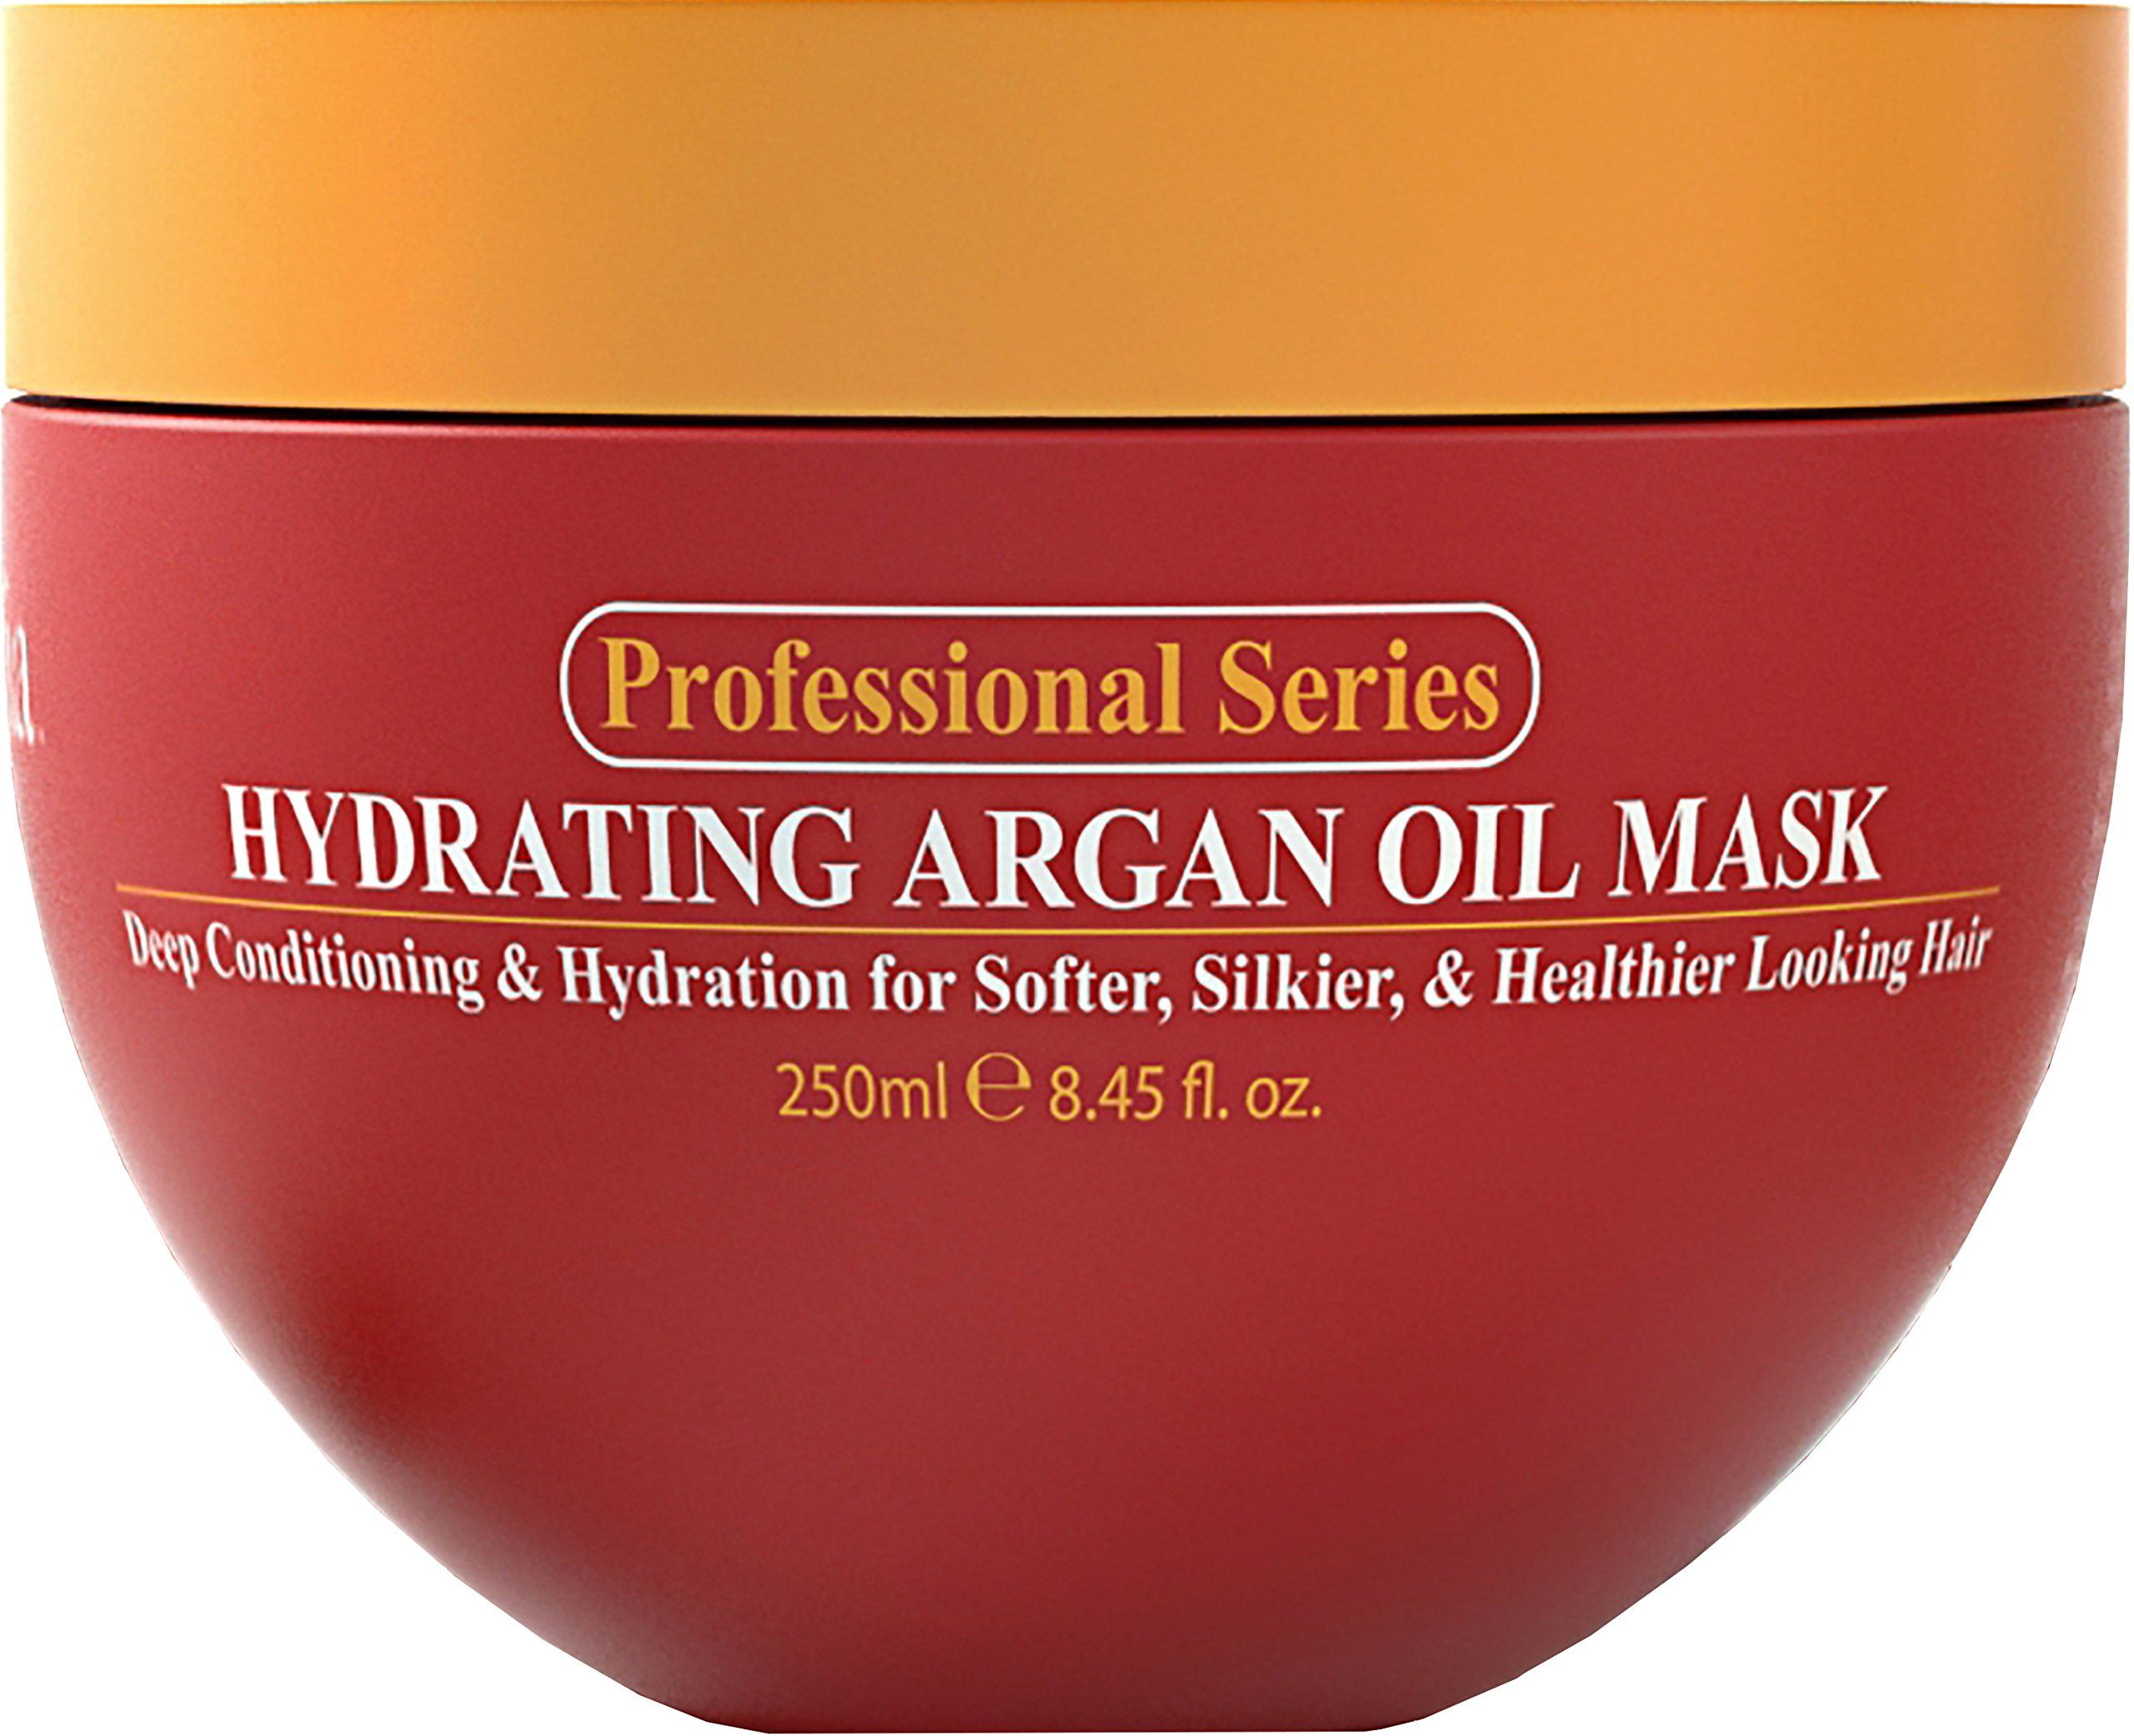 Hydrating Argan Oil Hair Mask and Deep Conditioner By Arvazallia for